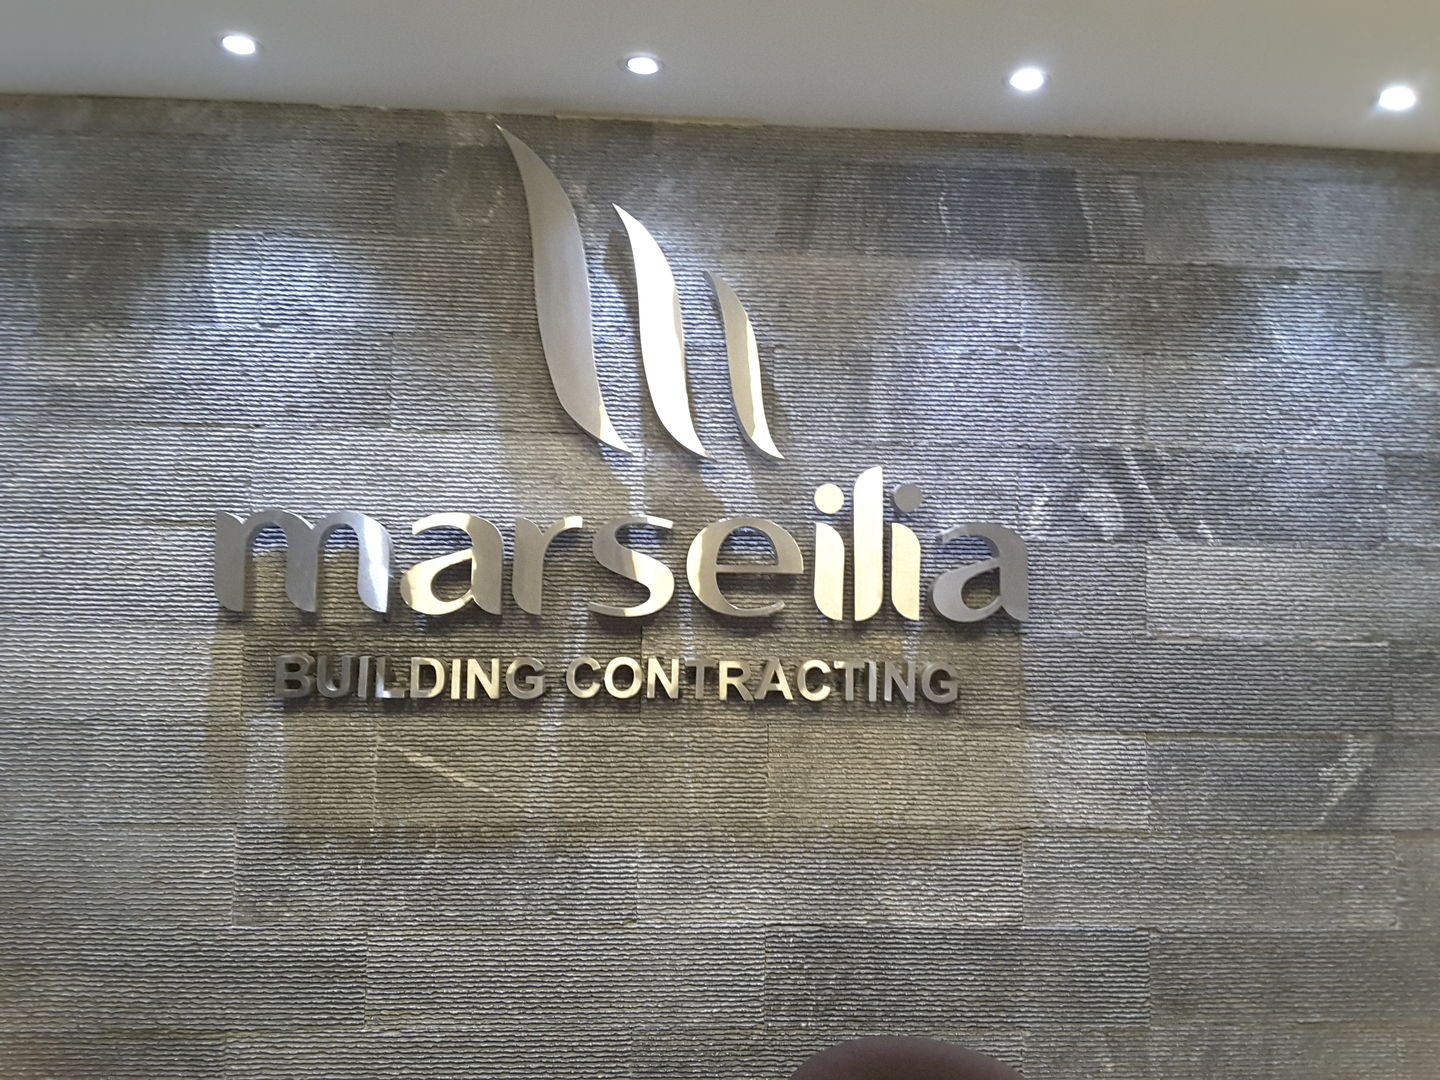 HiDubai-business-marseilia-building-contracting-construction-heavy-industries-construction-renovation-al-garhoud-dubai-2